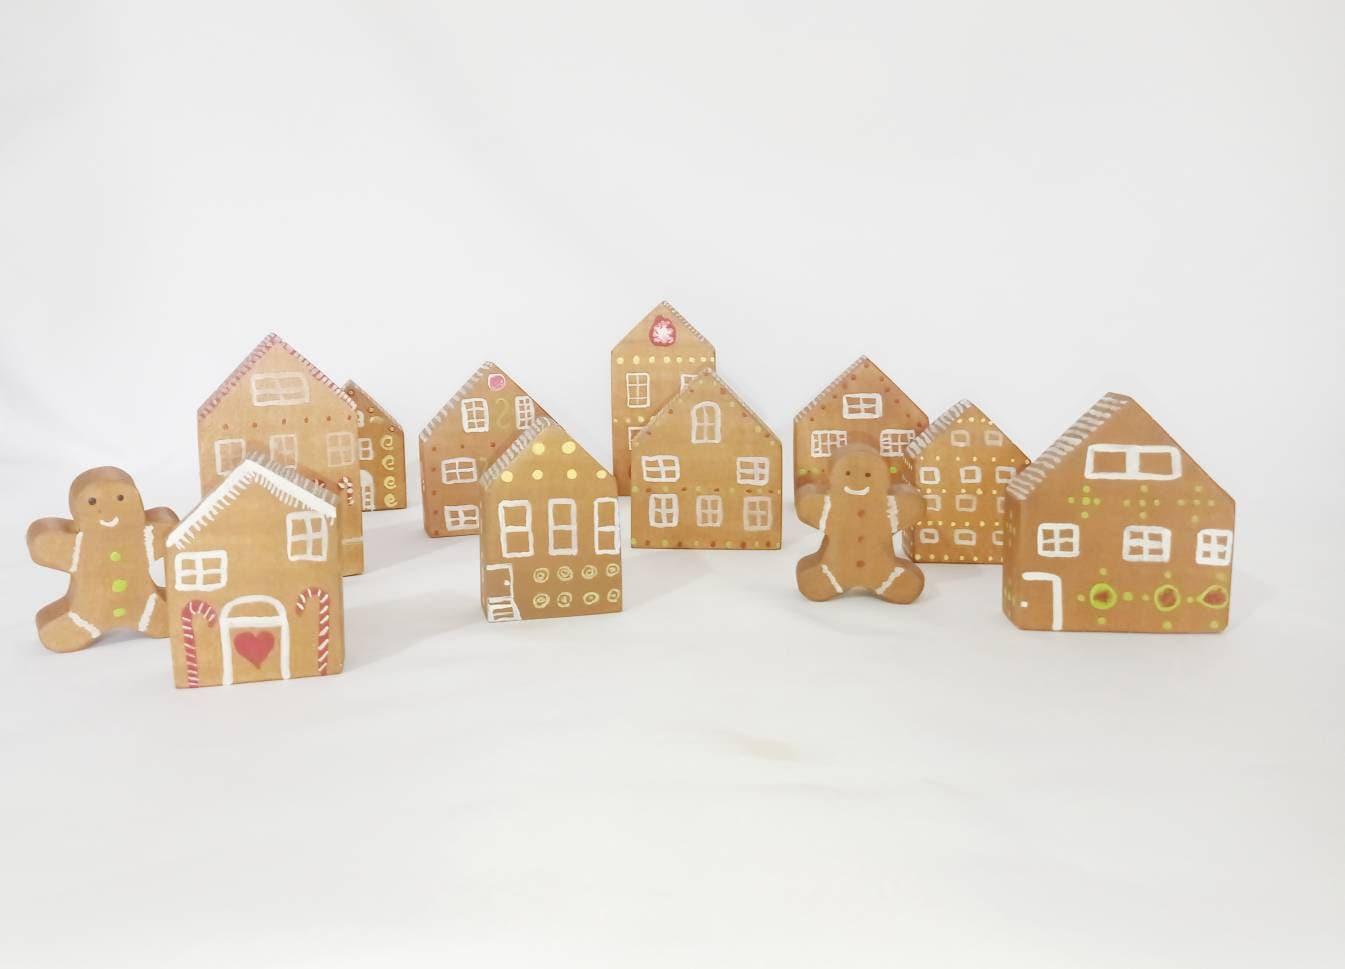 Gingerbread man village, christmas decor, gingerbread man, wooden waldorf toy, open ended toy set, wooden decoration, christmas gift